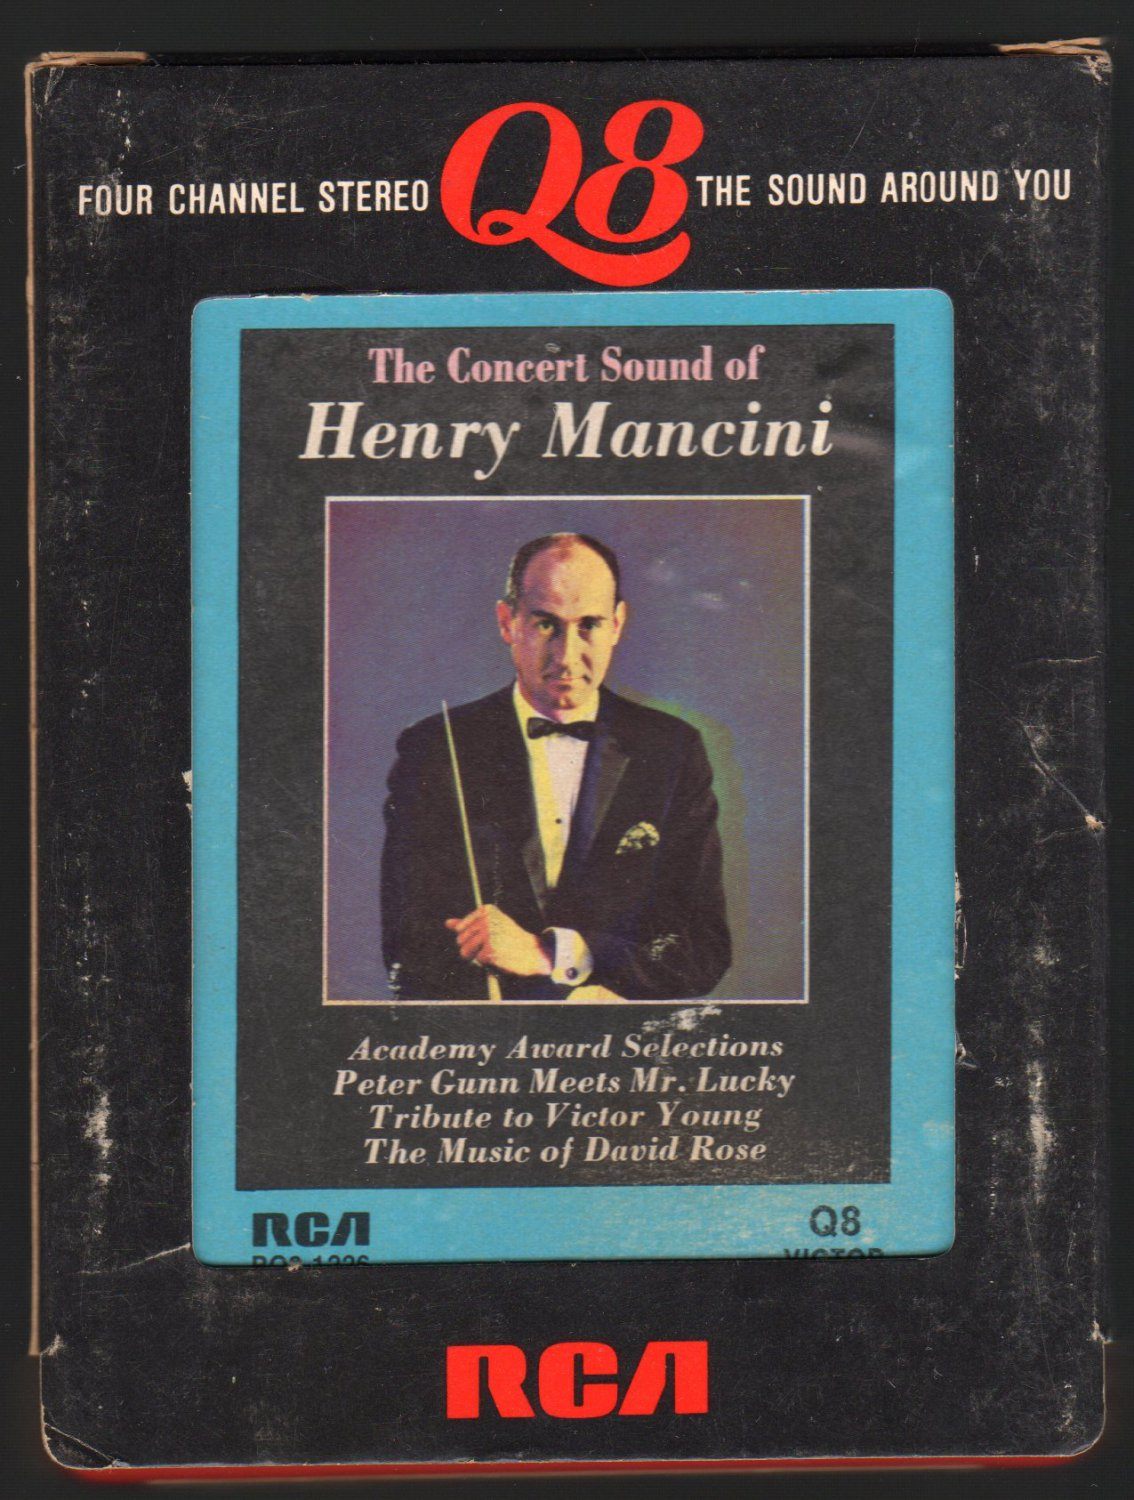 Henry Mancini - The Concert Sound Of Henry Mancini 1964 RCA Re-issue Quadraphonic A45 8-TRACK TAPE